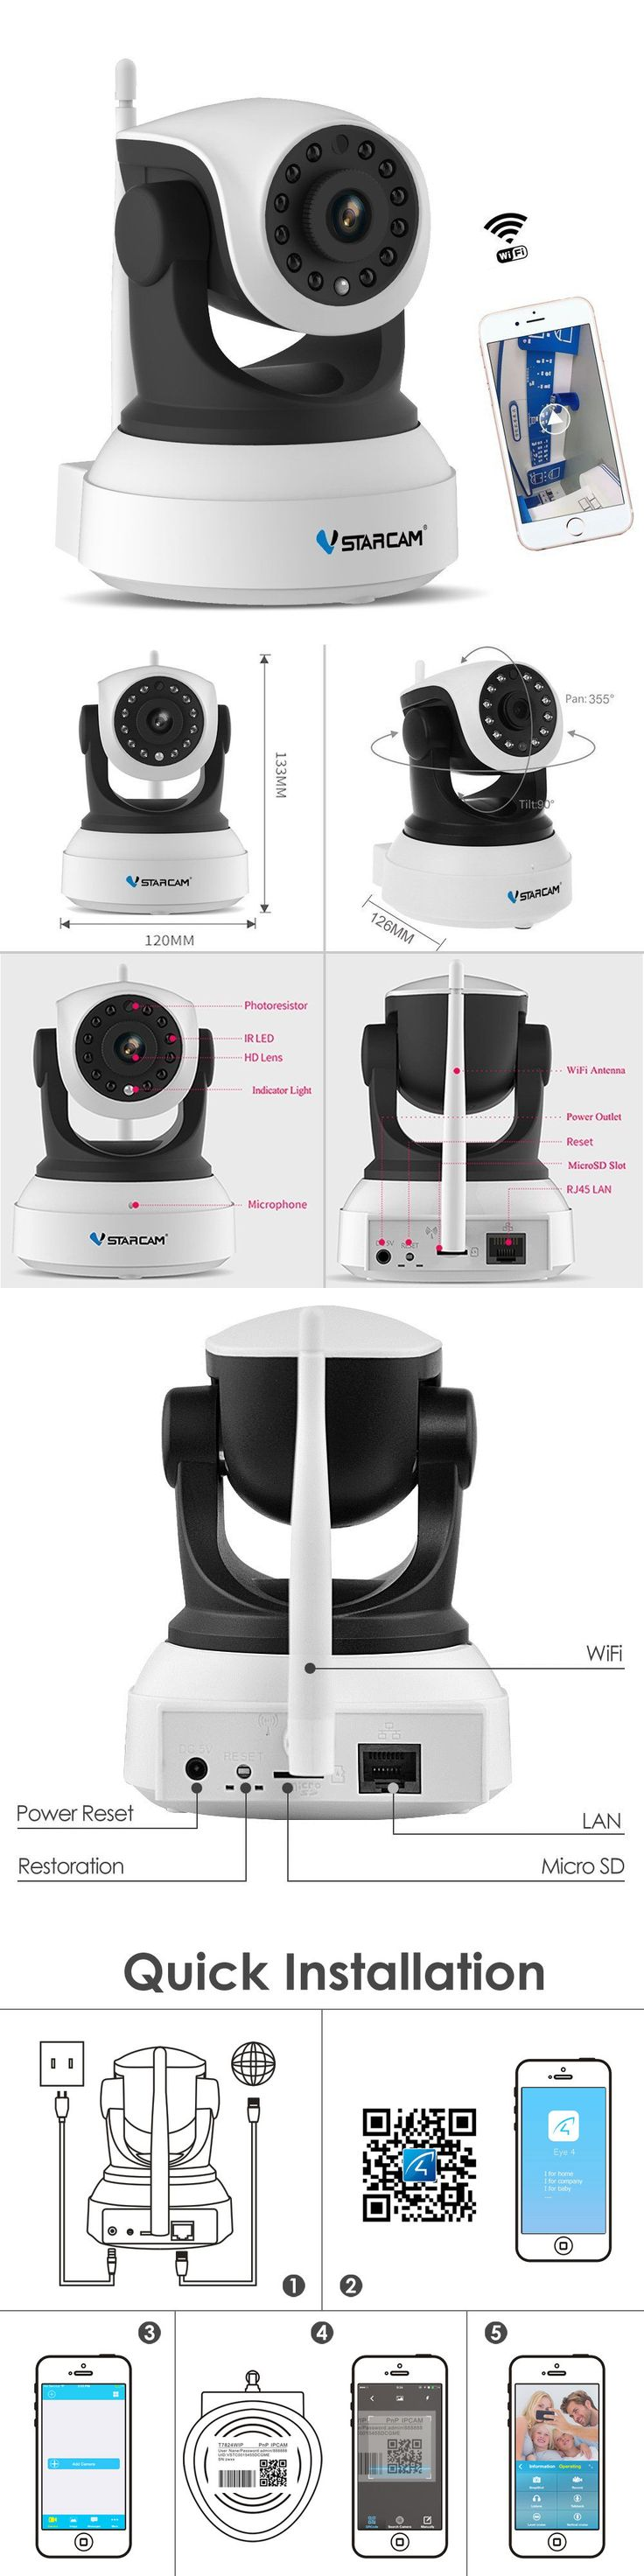 Home Network Security Appliance The 25 Best Wireless Cctv Camera Ideas On Pinterest Cctv Camera